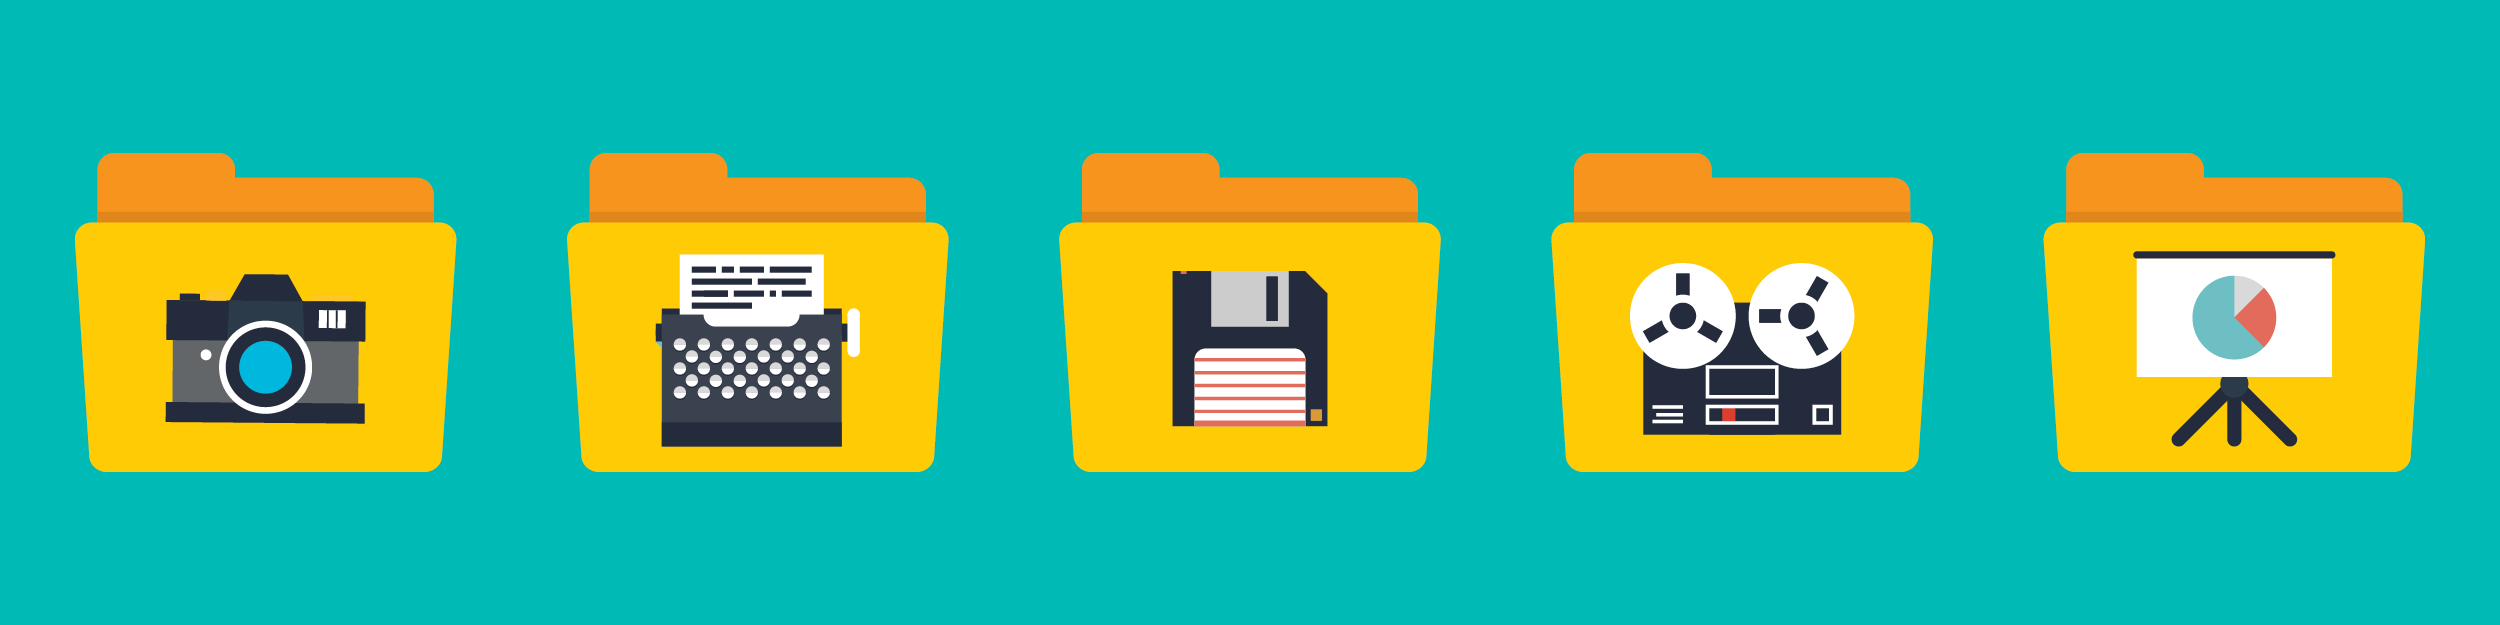 illustration of five file folders with different icons on each: a camera, typewriter, floppy disk, movie reel, and pie chart on an easel